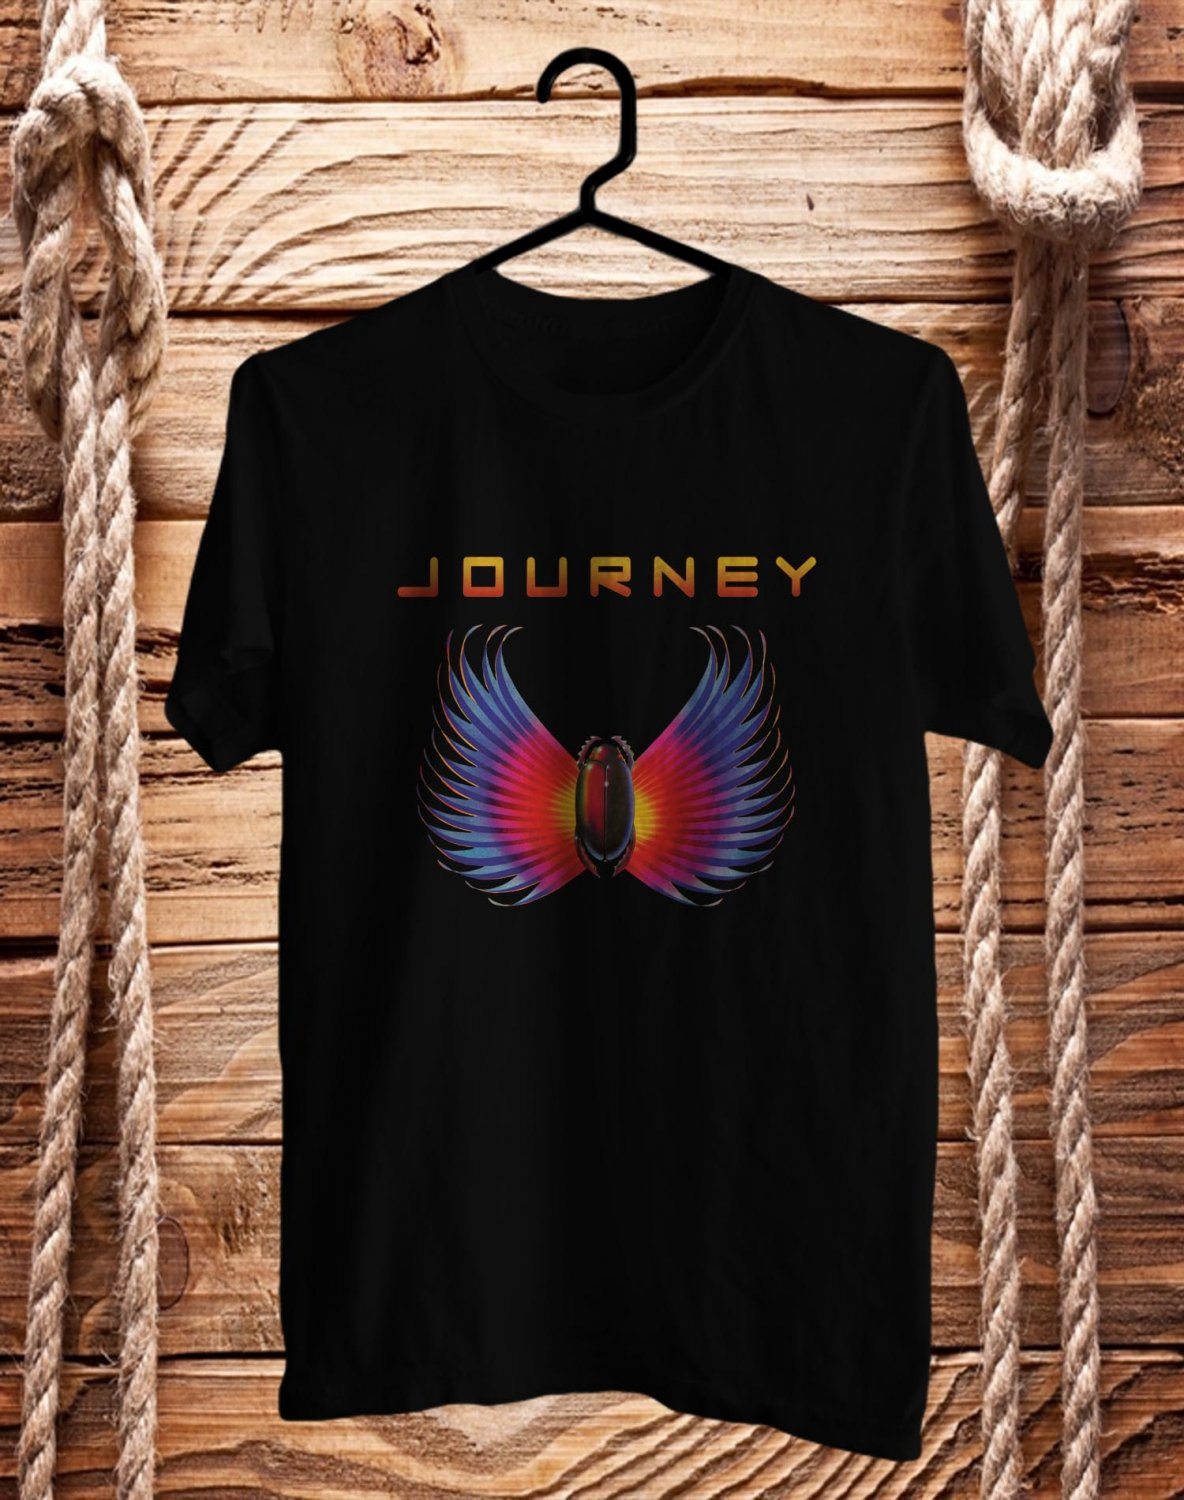 Journey Band logo BLack Tee's Front Side by Complexart